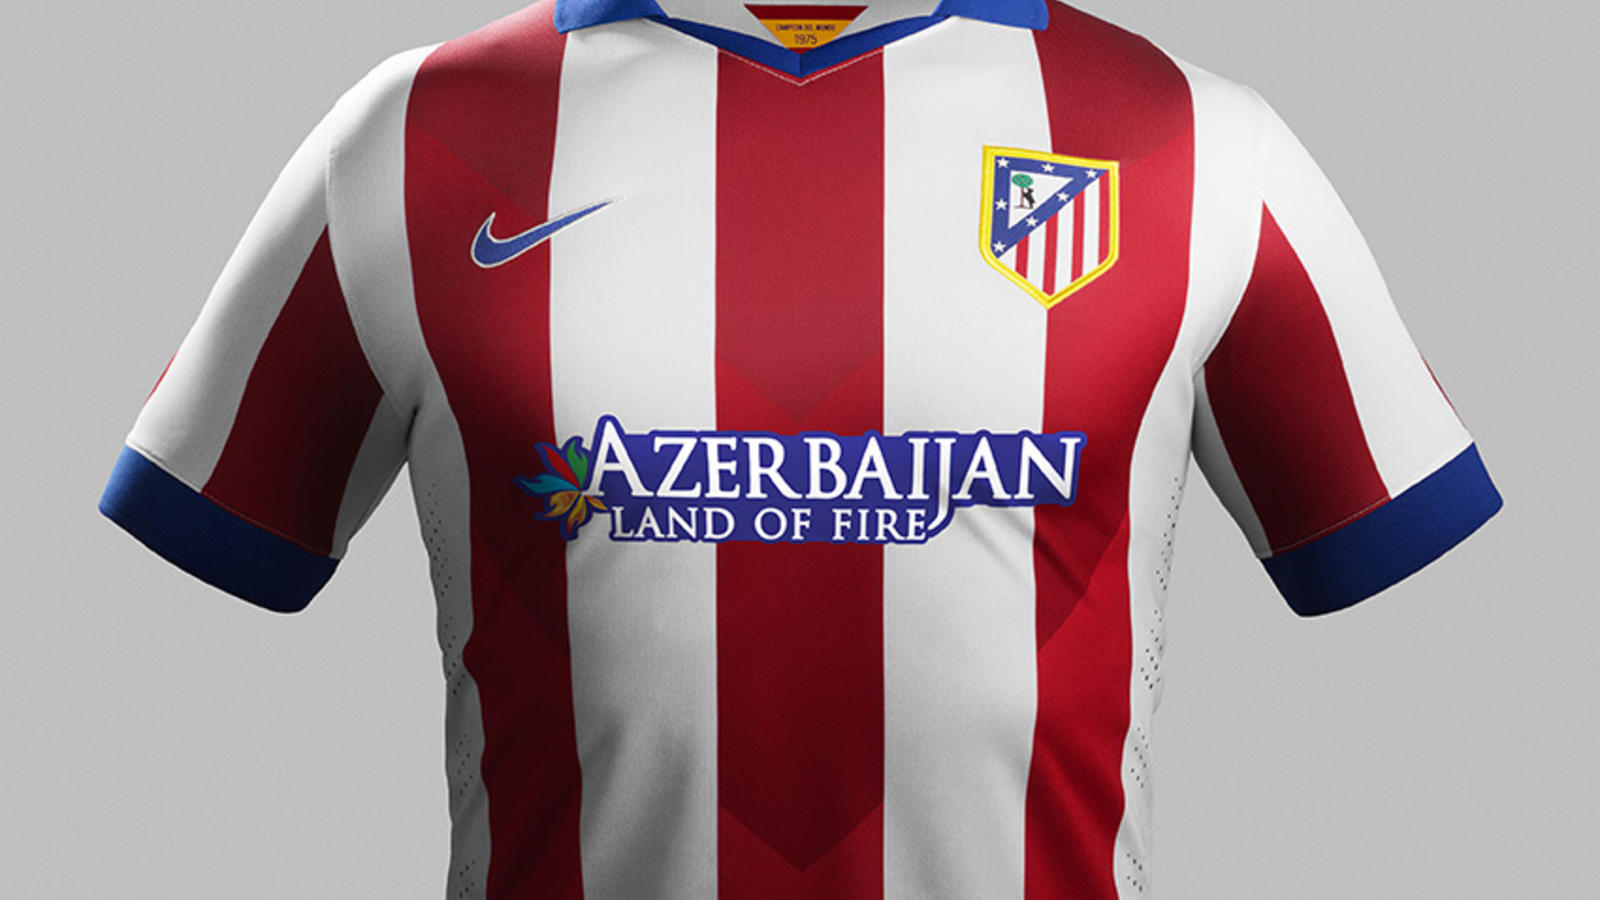 0468d90bd su14_match_atleticomadrid_pr_h_front.  su14_match_atleticomadrid_pr_h_full_body. nike_athleticomadrid_lead_shot.  su14_match_atleticomadrid_pr_h_front